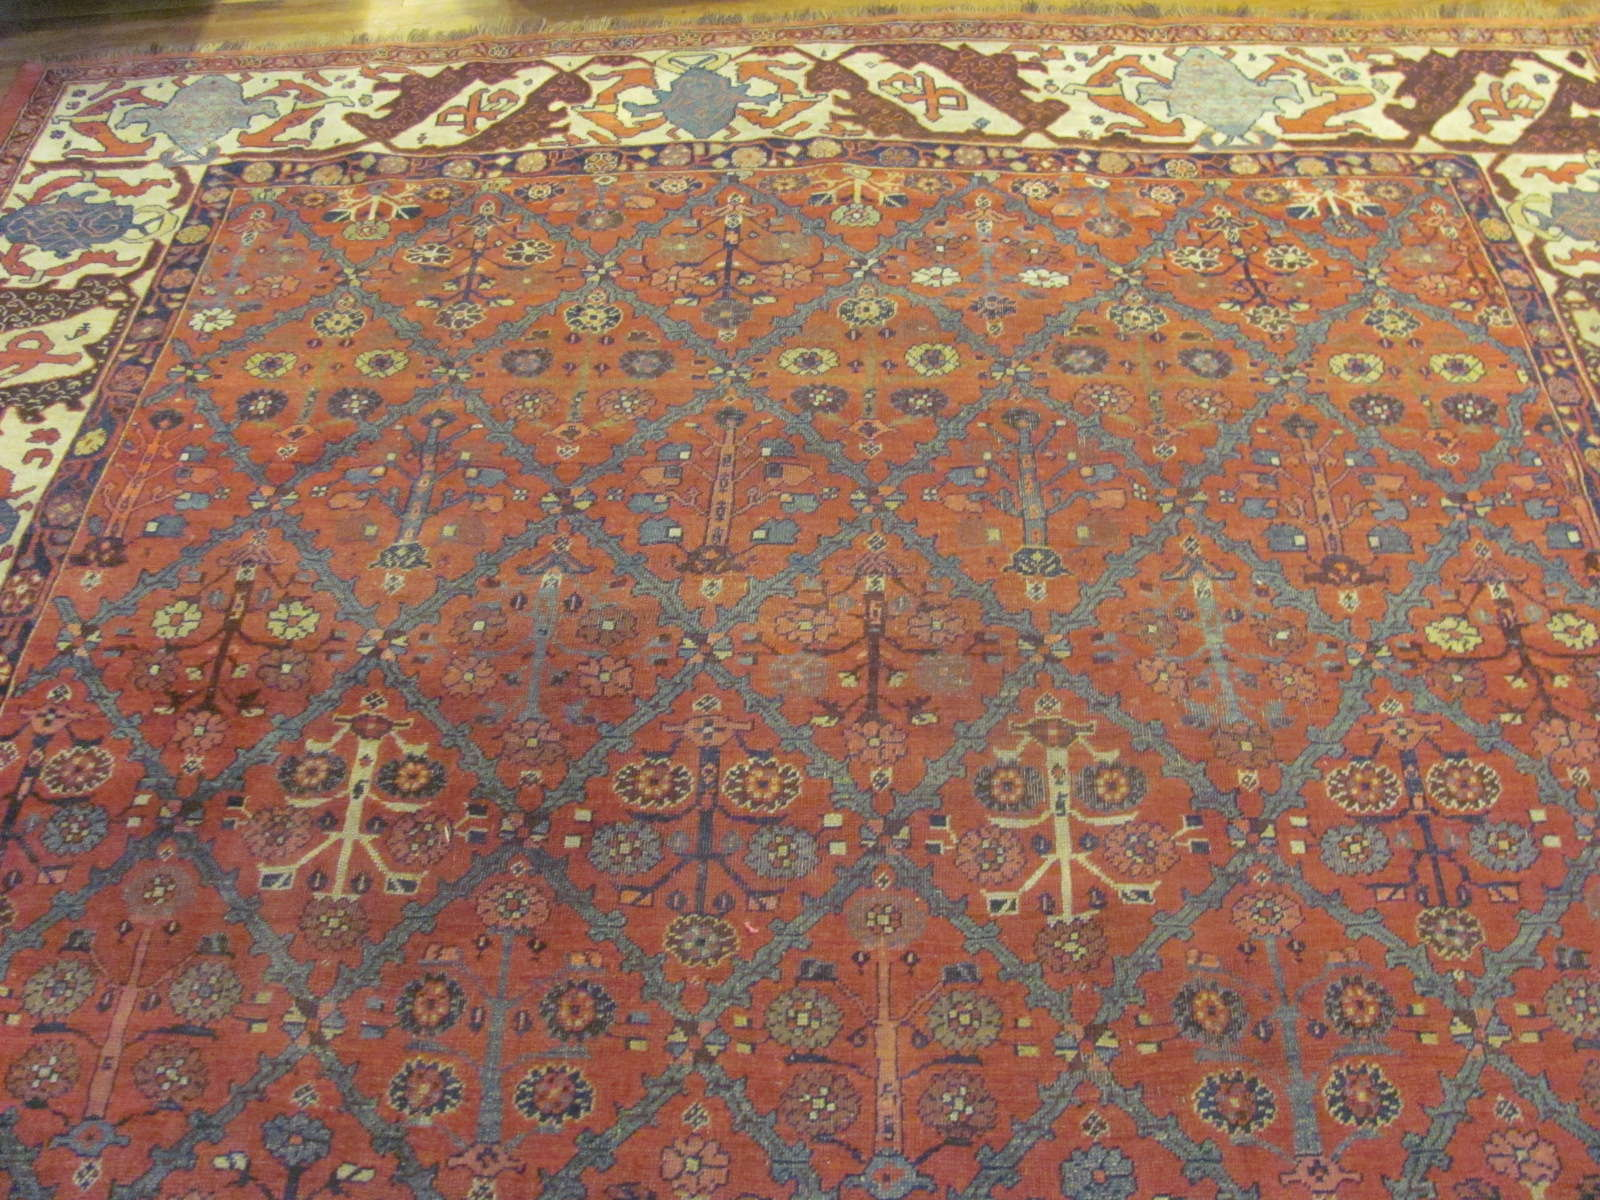 24868 antique persian bidjar rug 7,8x10,6-1